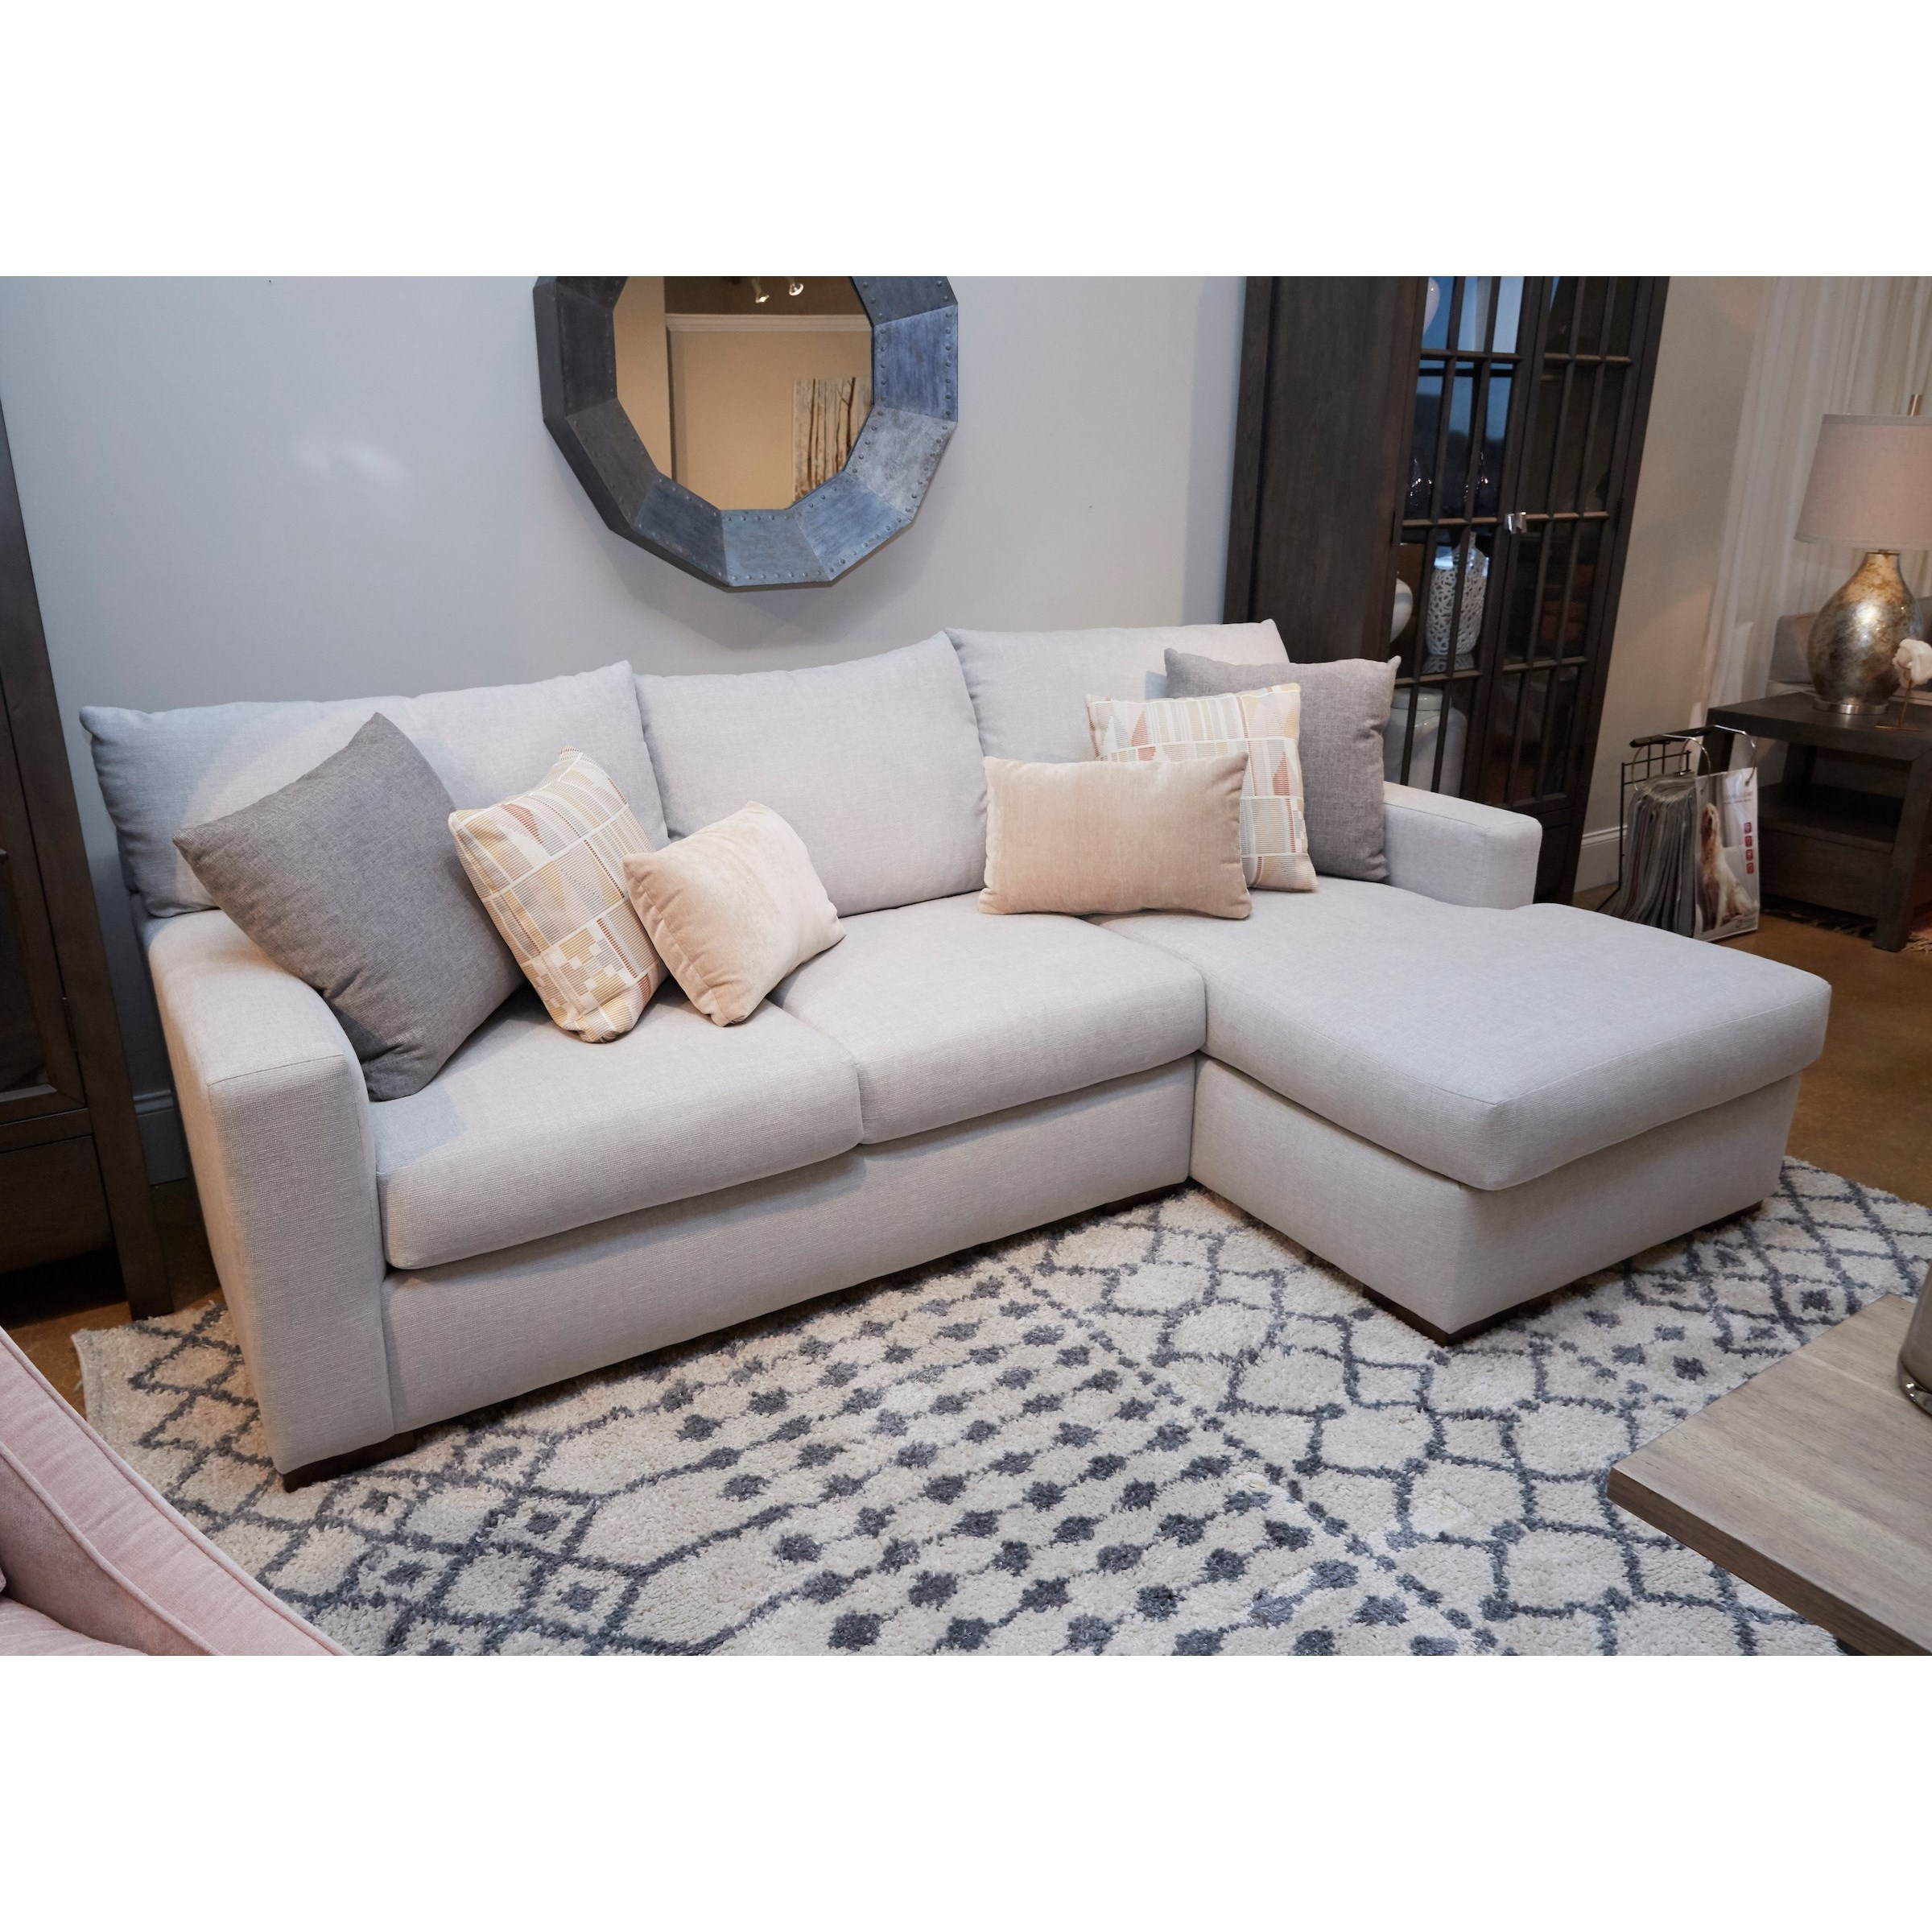 Coley Sectional Sofa with Chaise by Klaussner at Miller Home